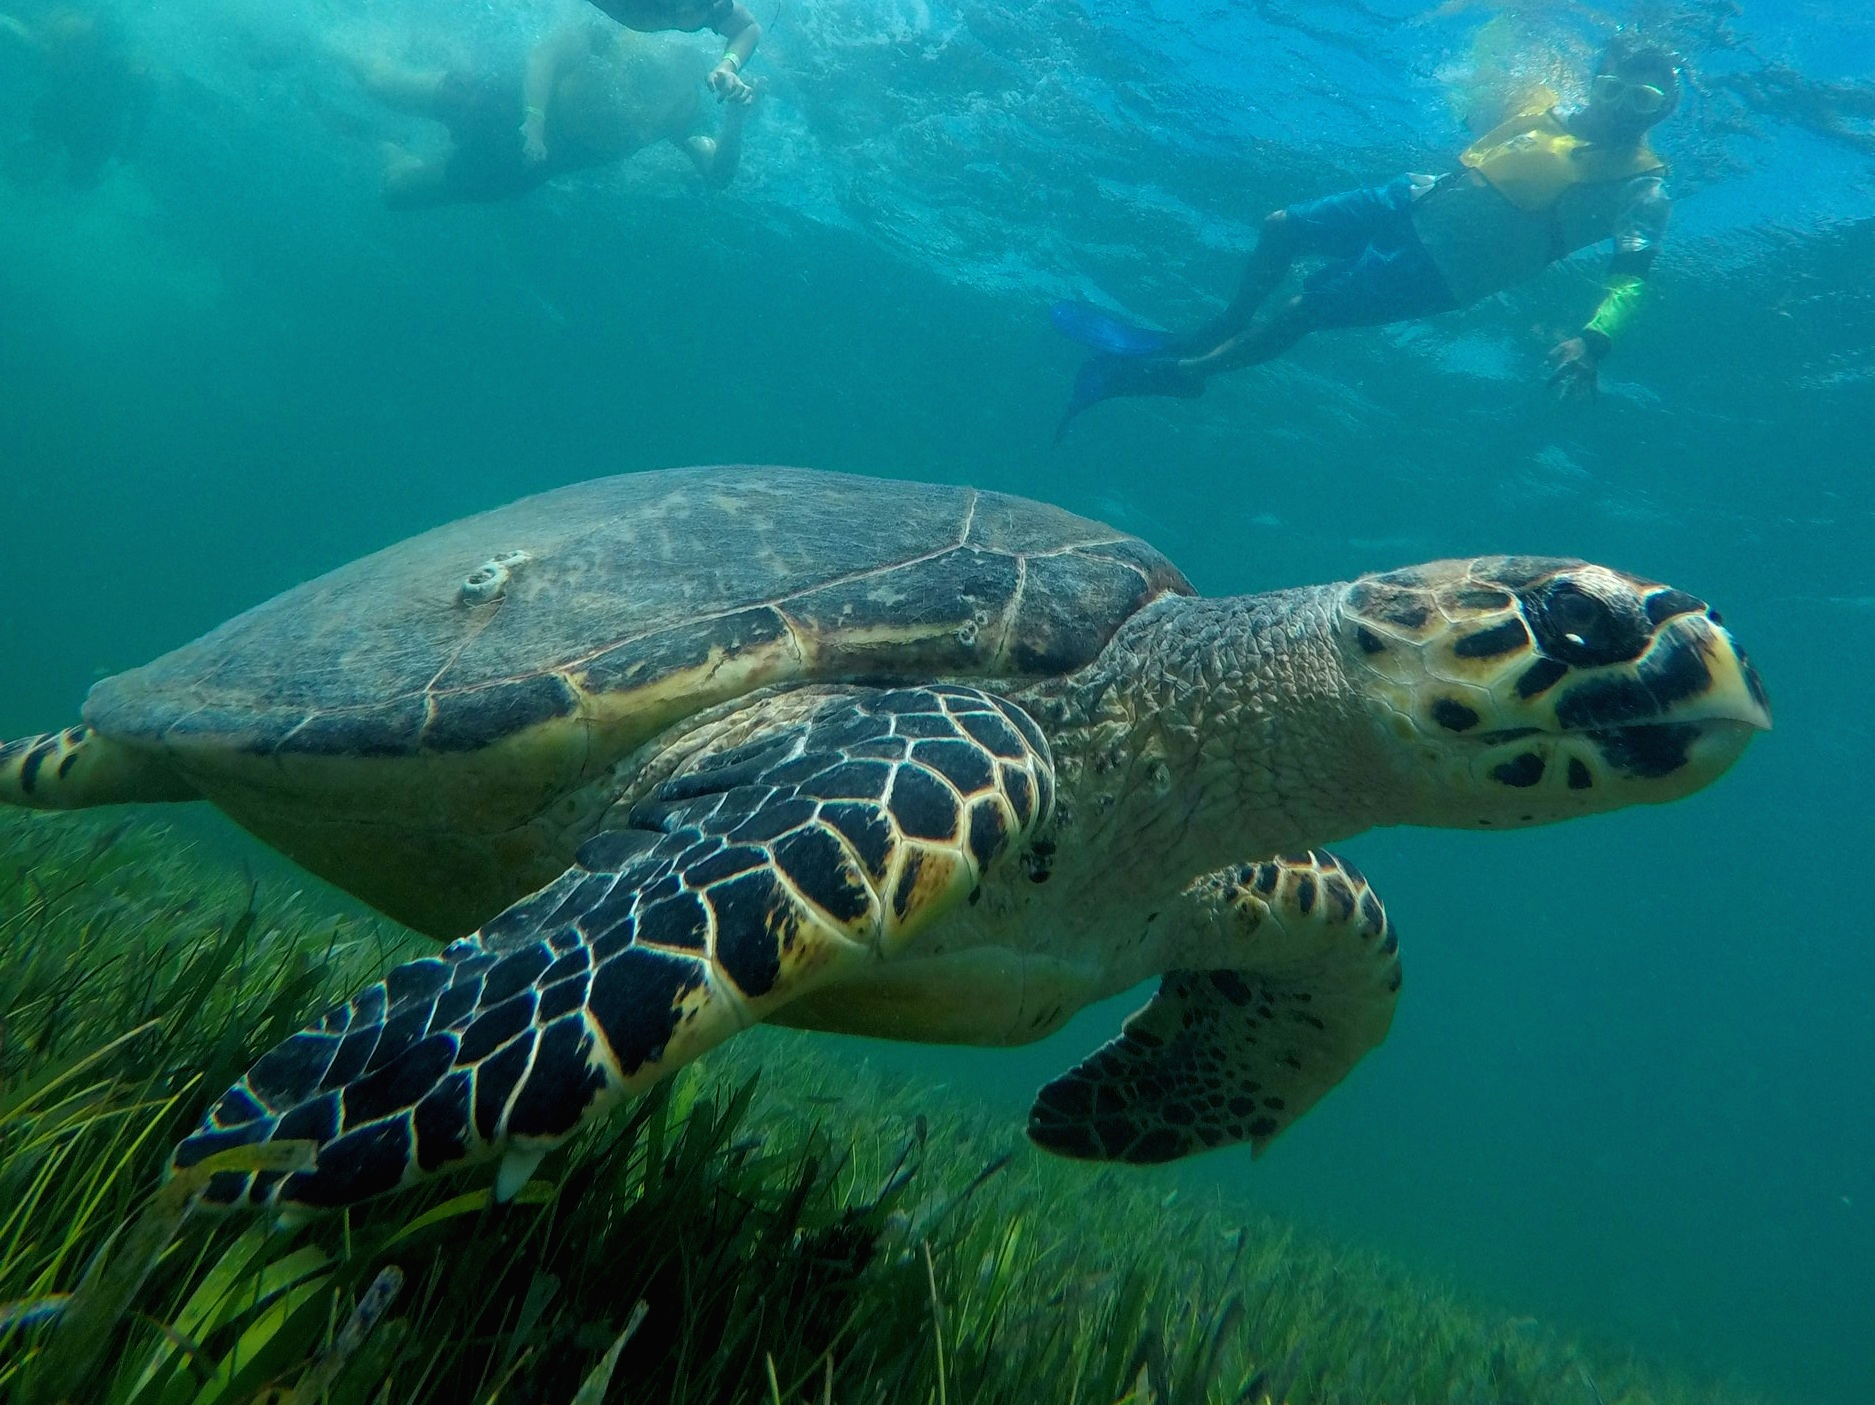 We were fortunate enough to spot a sea turtle during our tour — and a rather large one, at that. As they are endangered, there are  a number of initiatives being undertaken to preserve and protect them . For example, many resorts include sea turtle-oriented activities and education for their guests.